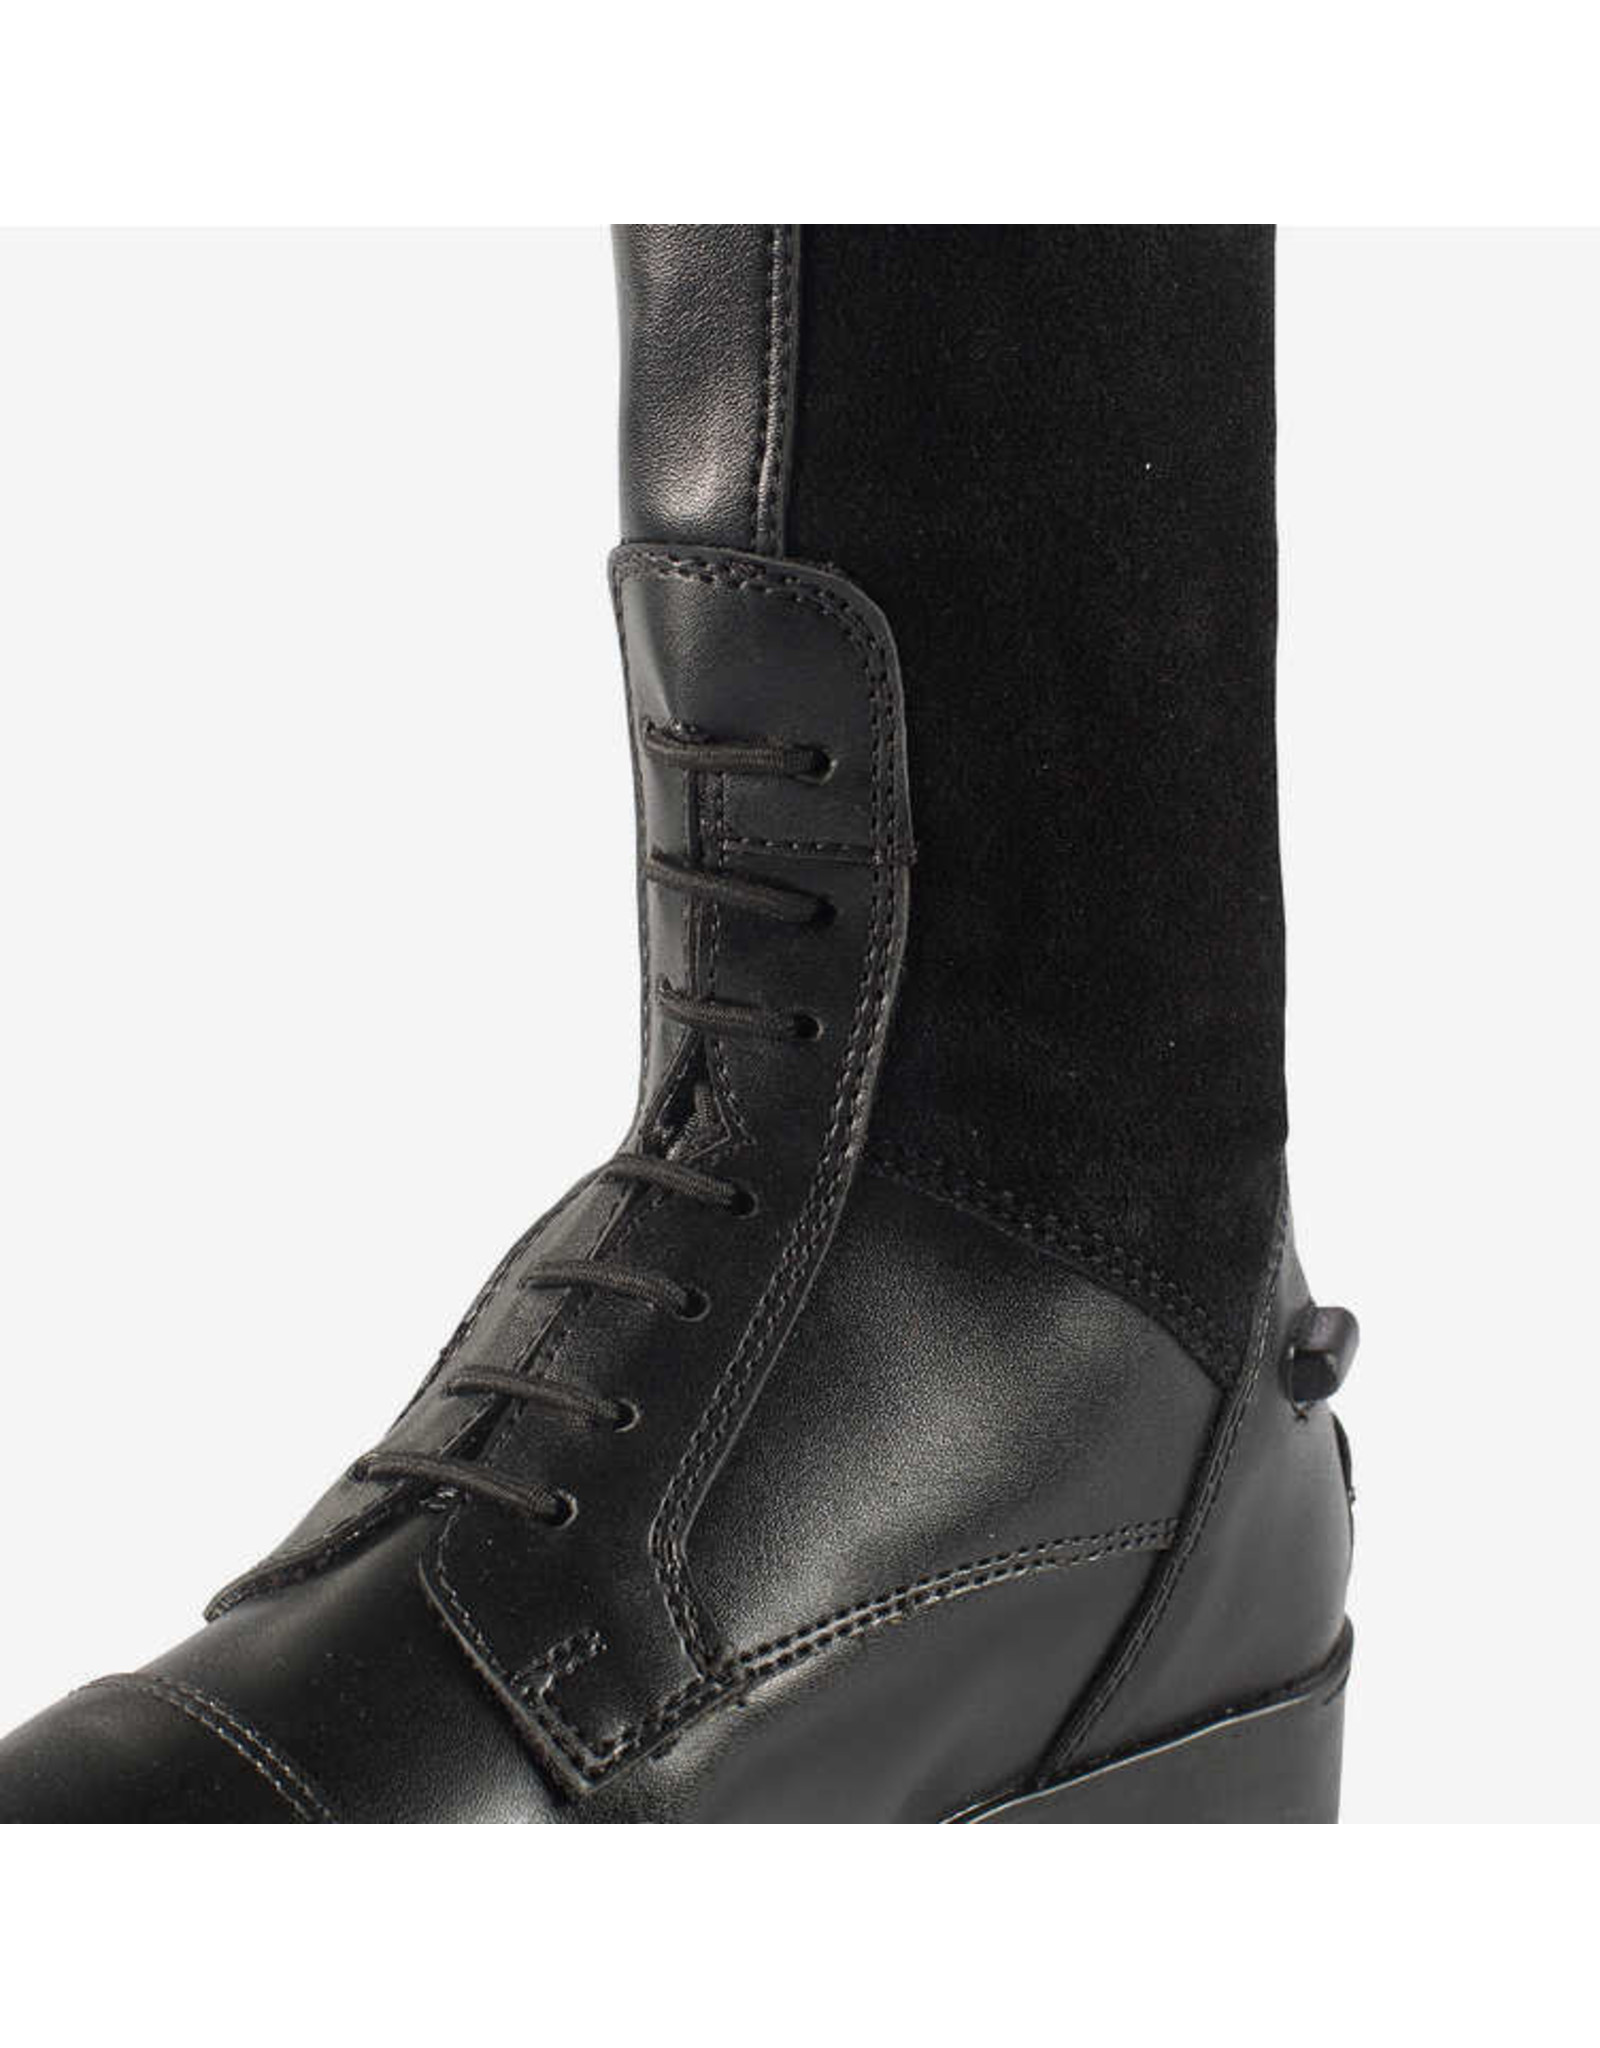 Kids Tall Field Boots Black Rover